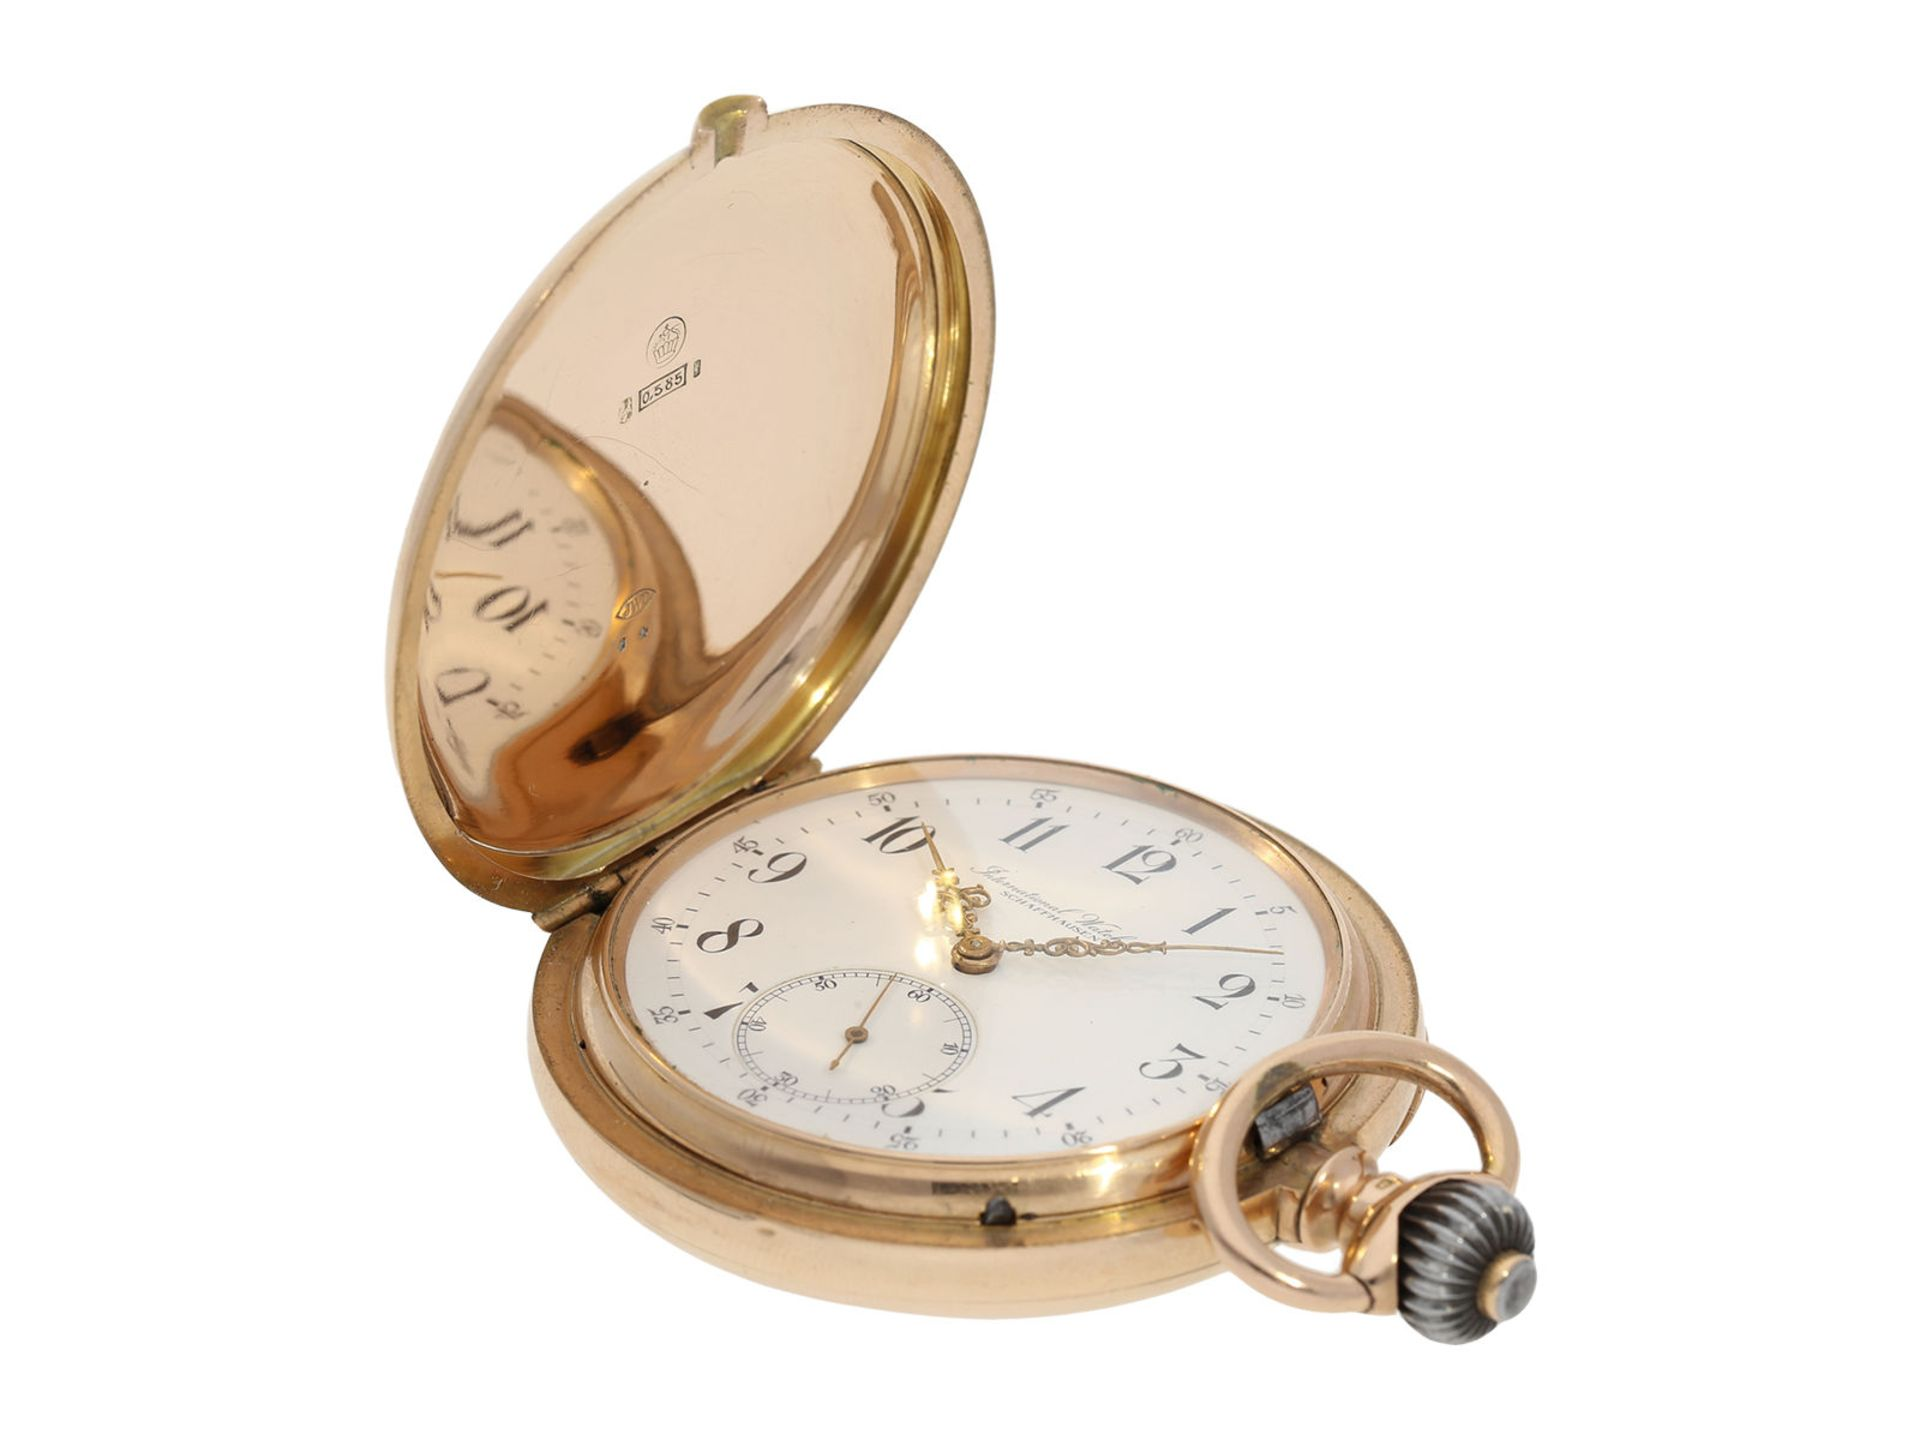 Pocket watch: particularly heavy and large, early pink gold hunting case watch, IWC Schaffhausen, - Bild 2 aus 6